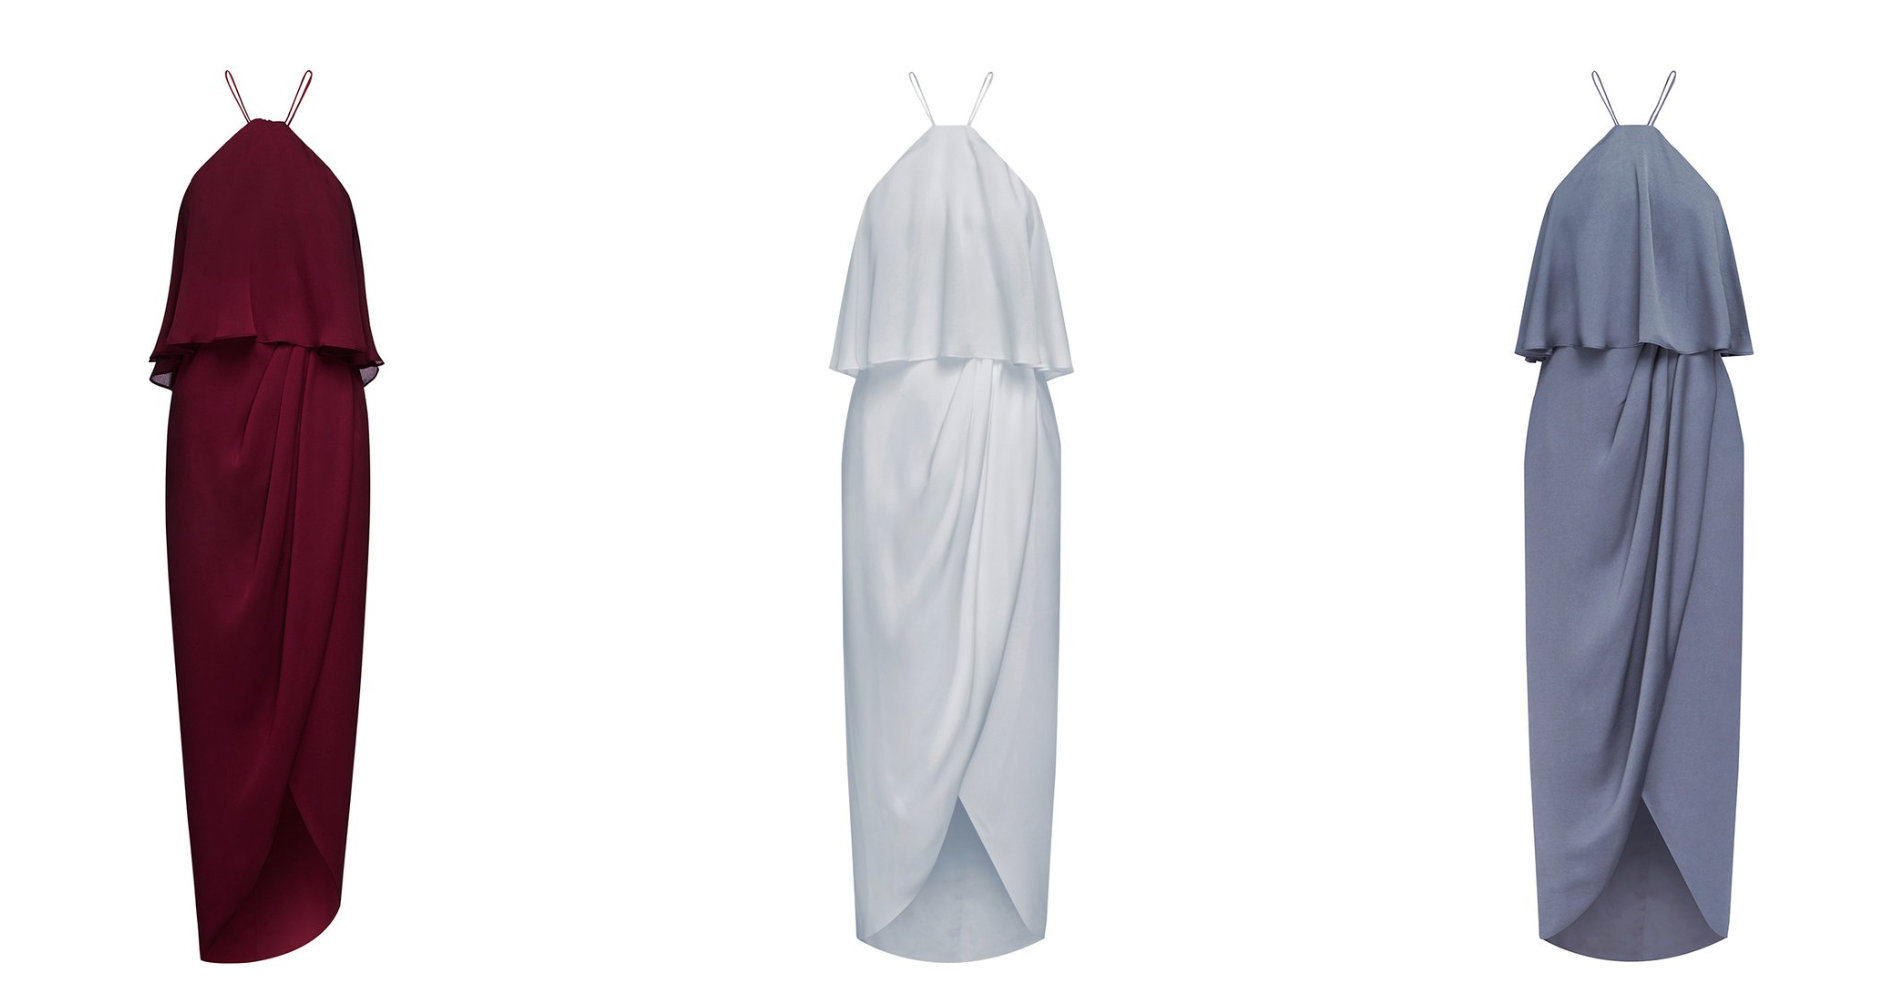 LUXE HALTER FRILL DRESS - Shona Joy featured on LOVE FIND CO.